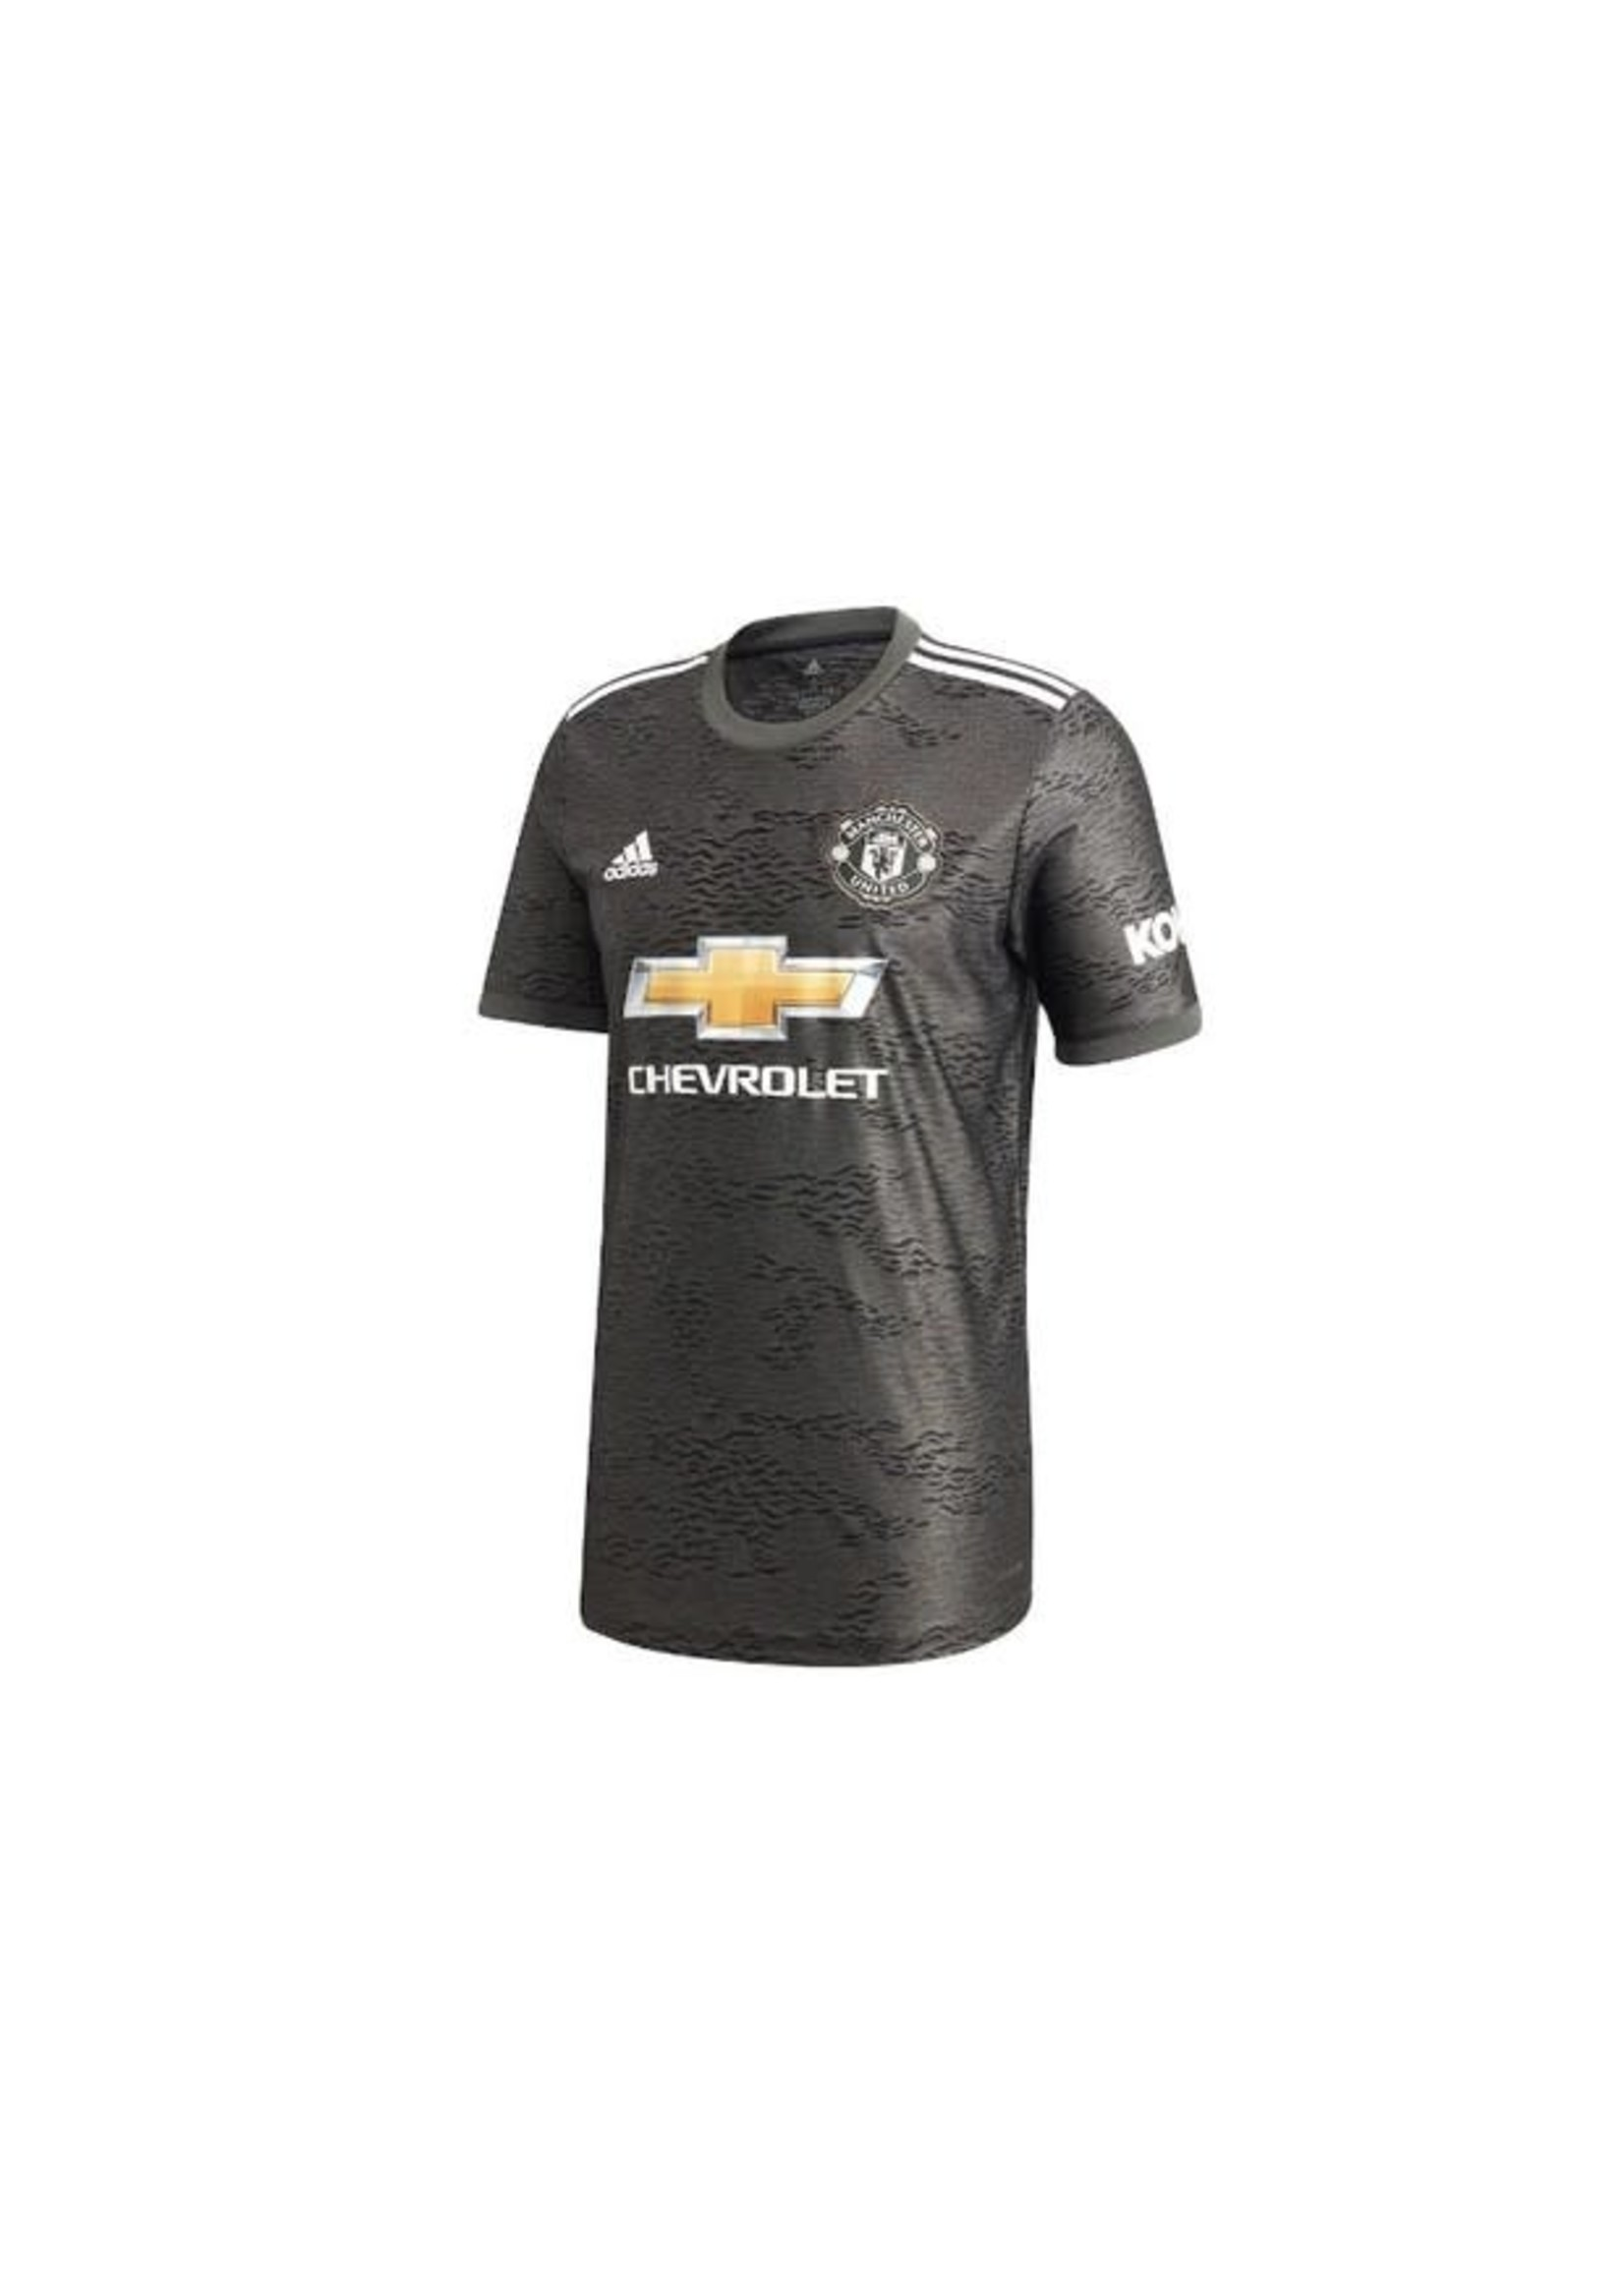 Adidas MANCHESTER UNITED 2020/21 AWAY JERSEY - YOUTH